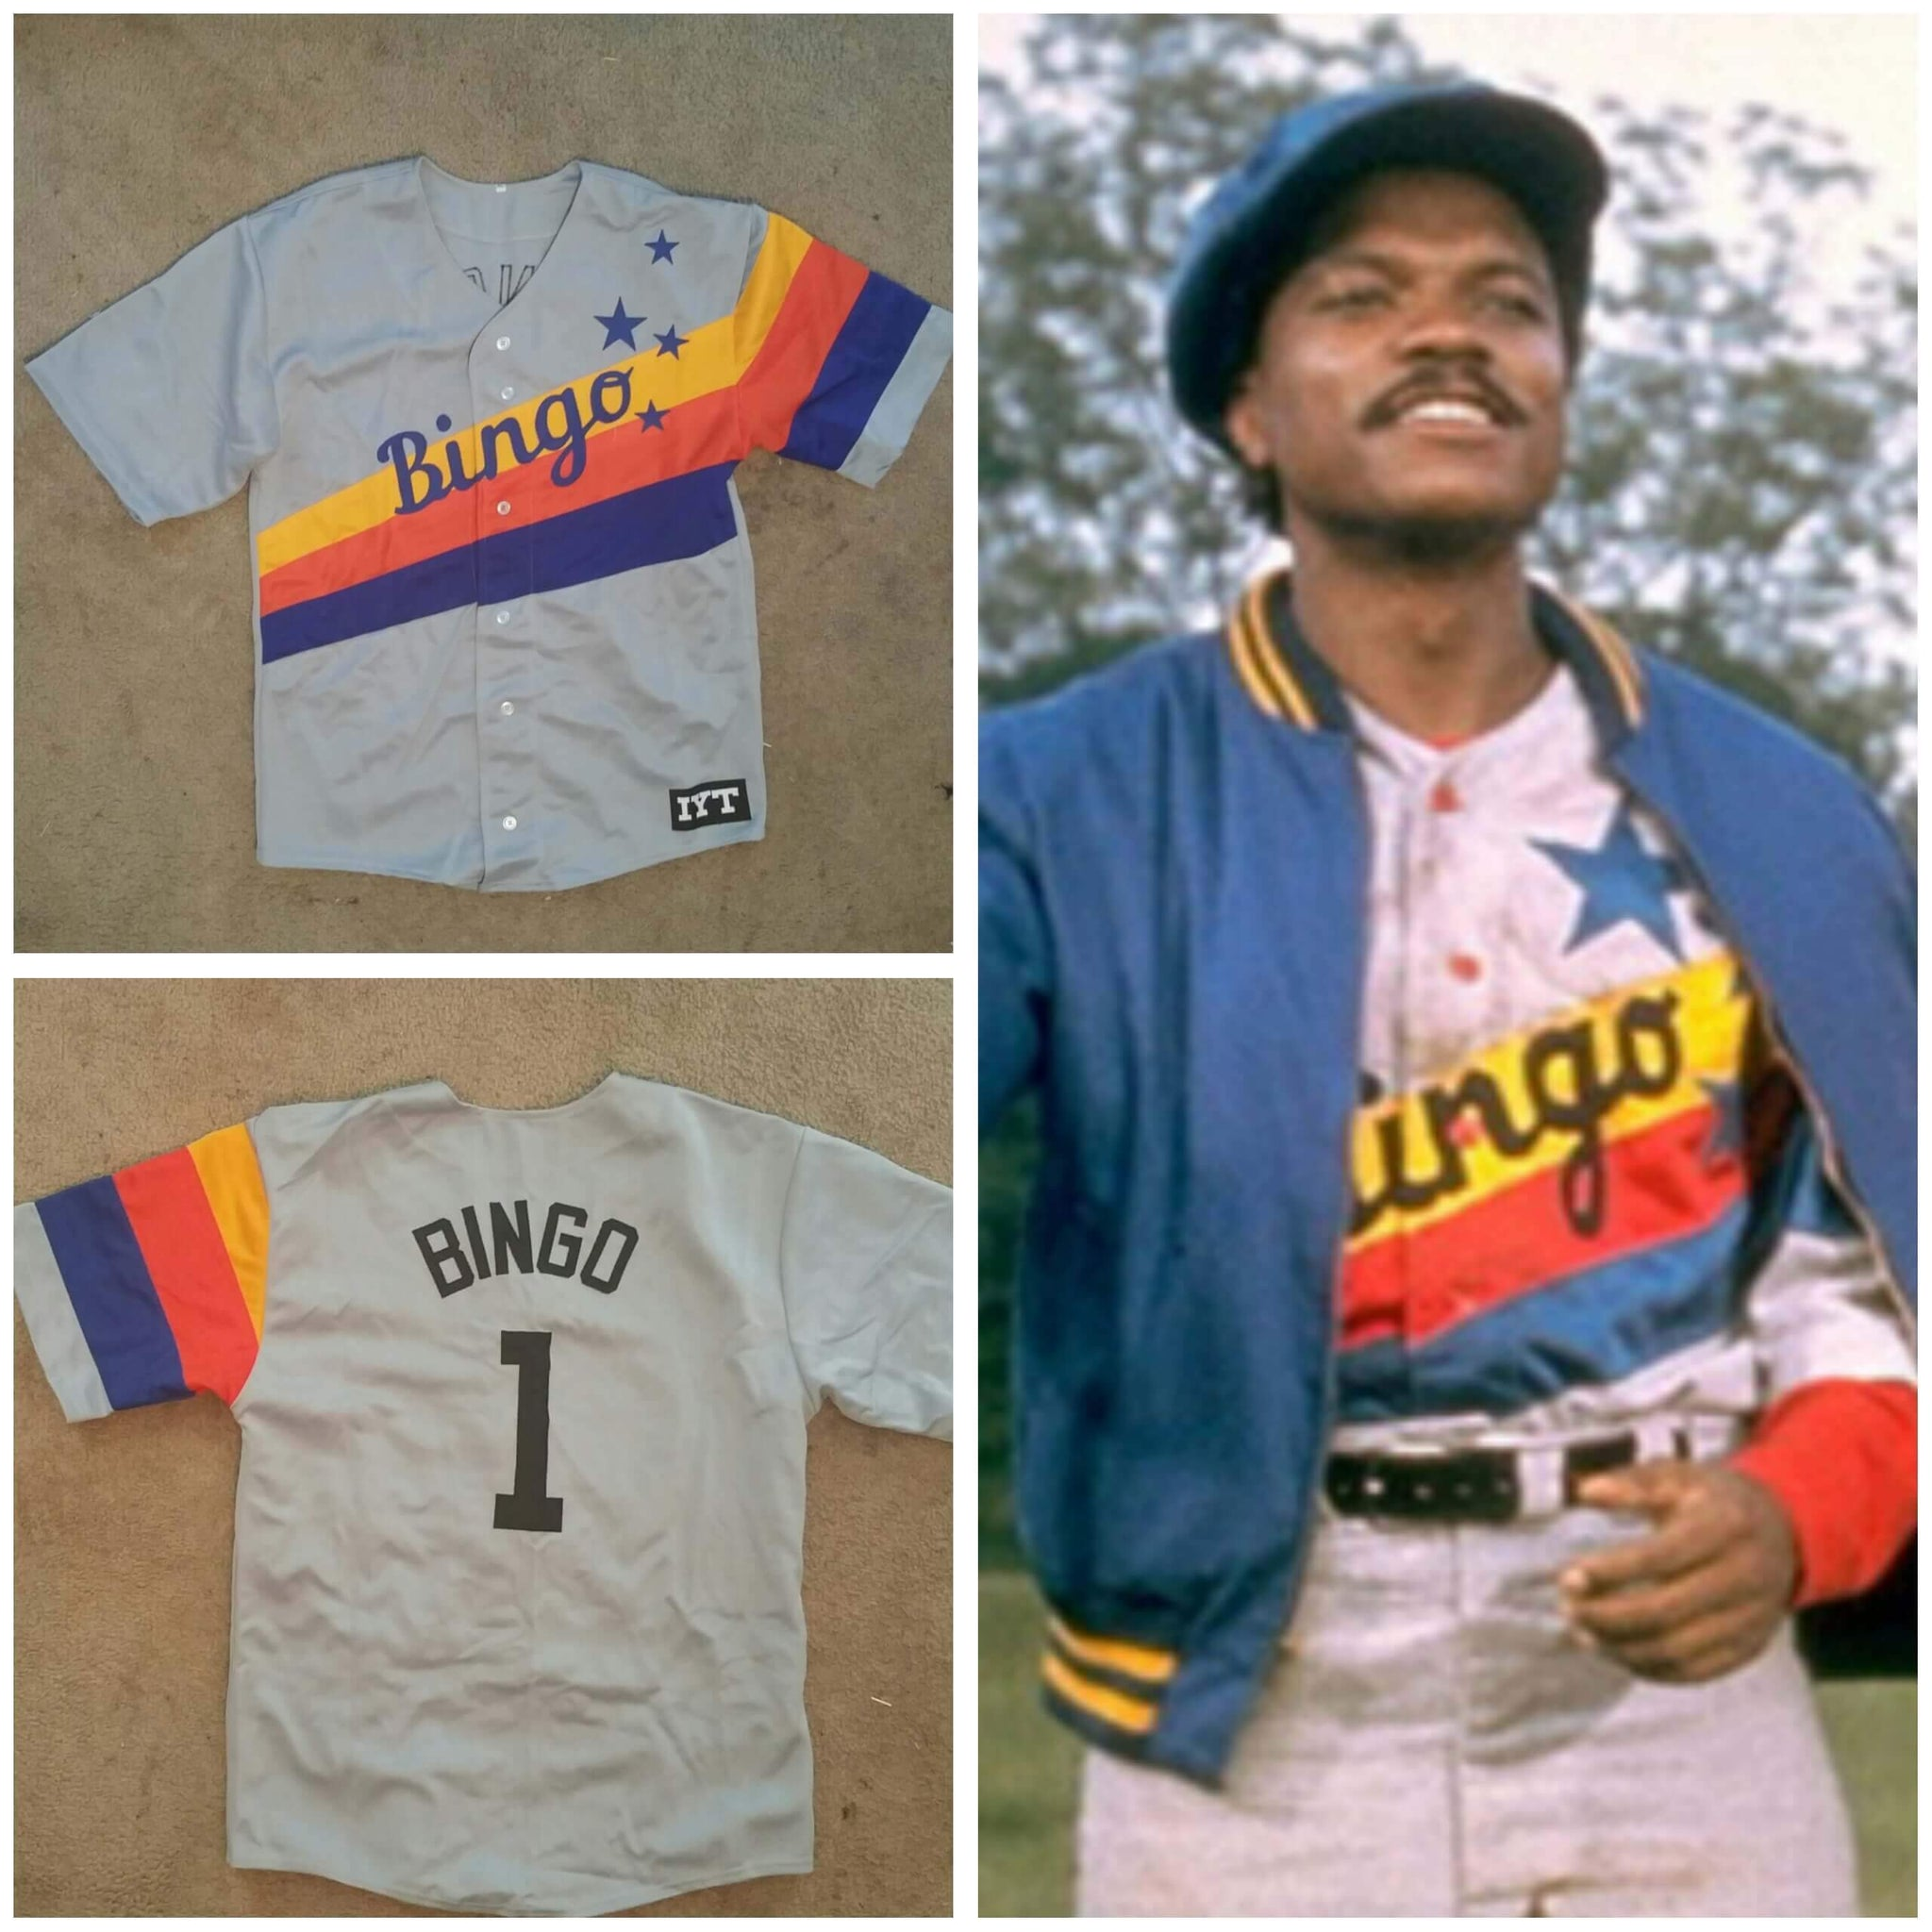 Bingo Long Traveling All Stars Baseball Jersey - Jersey Champs